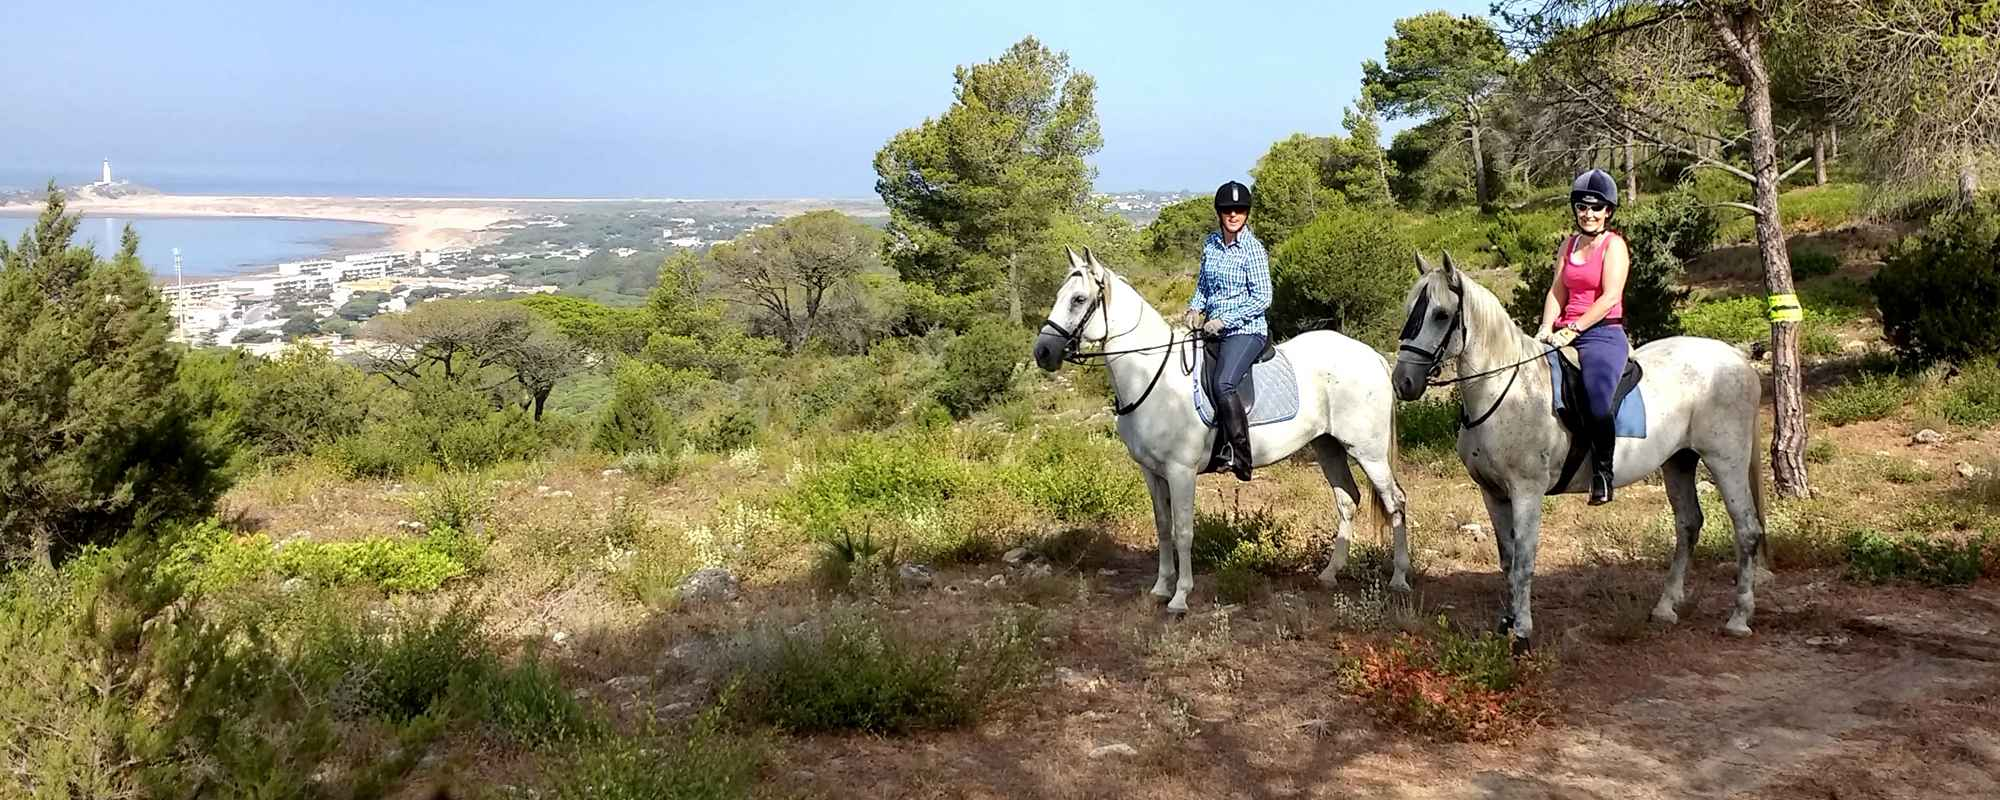 Horse riding holidays located on the coast in Andalusia.